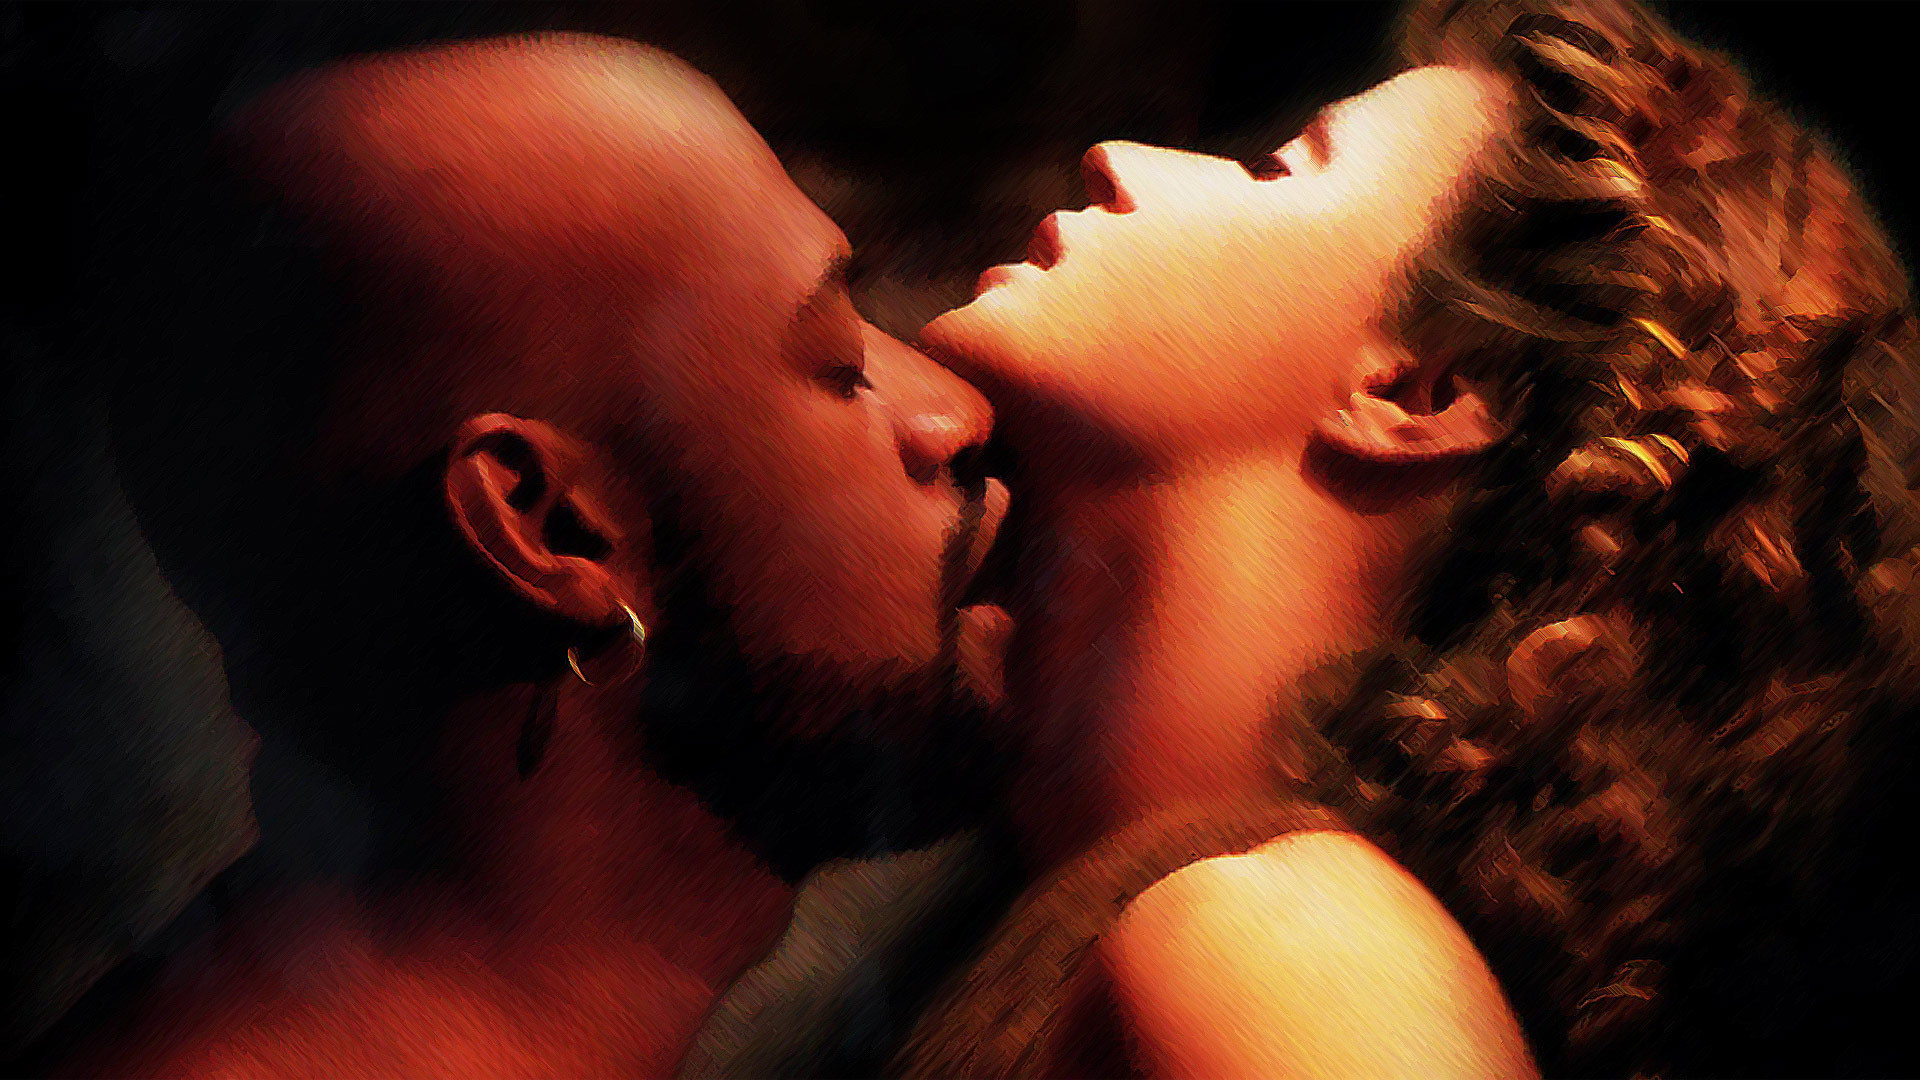 a comprehensive analysis of the movie adaptation of othello This clip is from the 1995 film adaptation of othello it has been cut from the original for educational use in comparing adaptations of shakespeare's work.